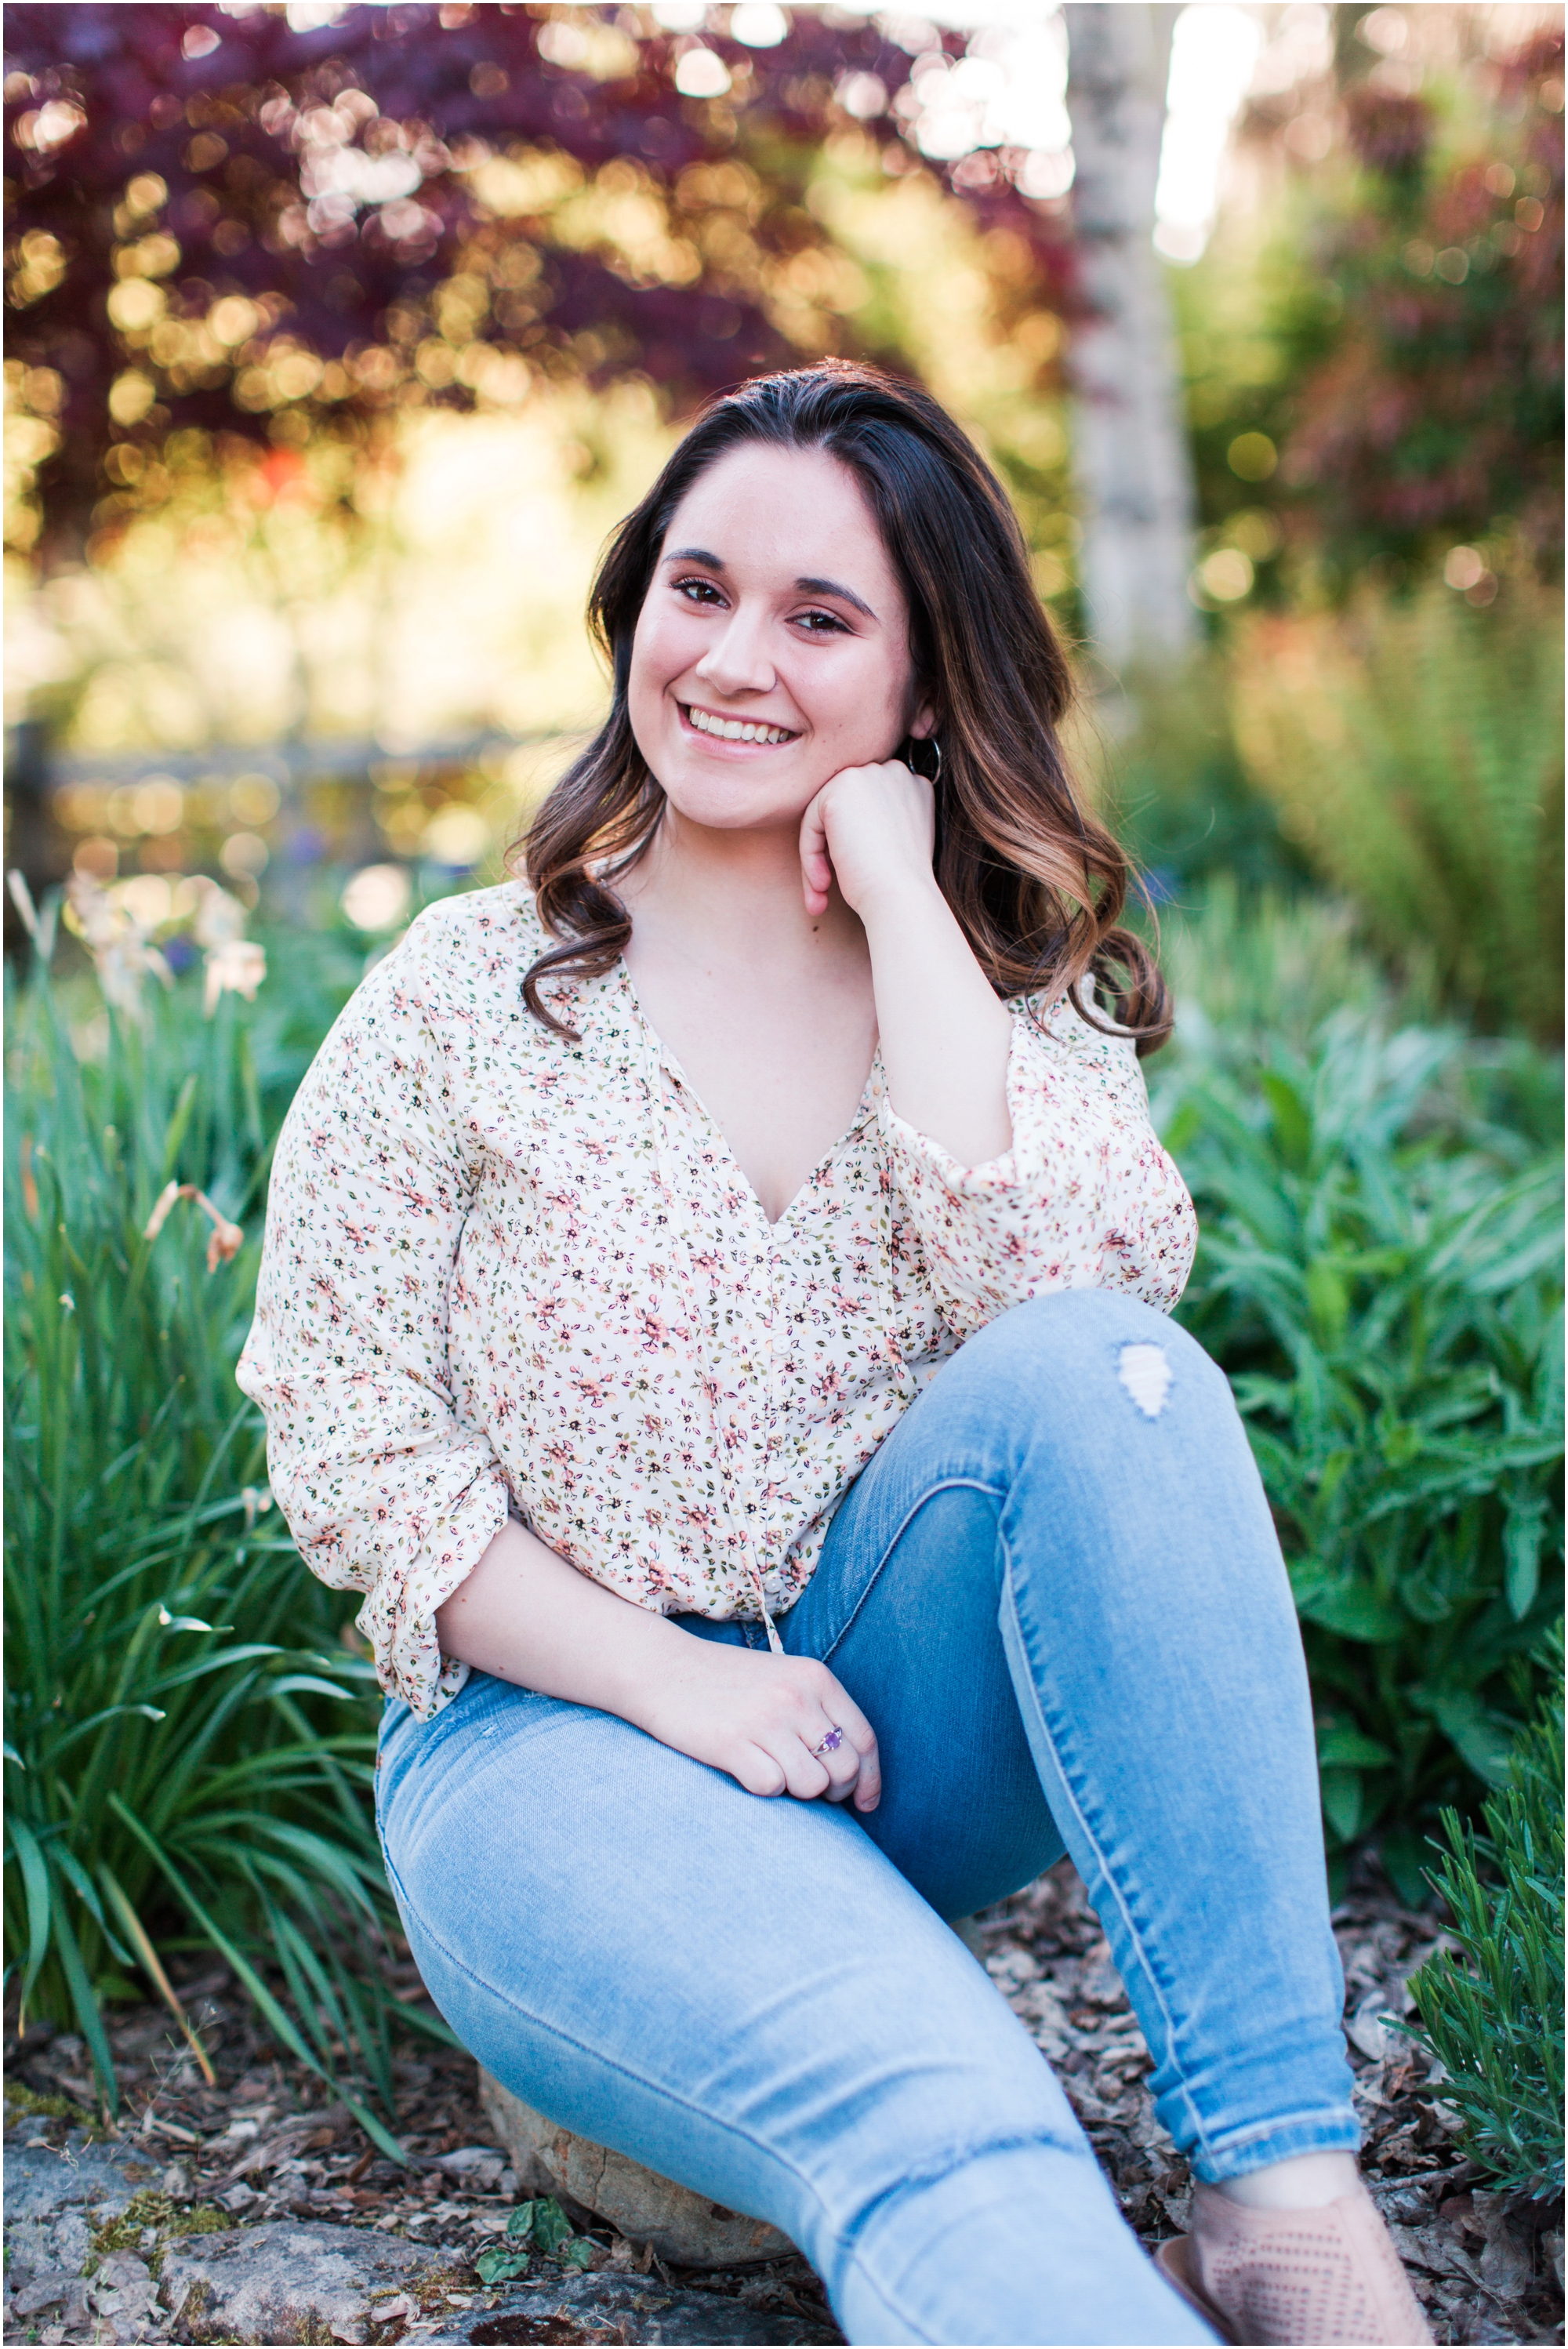 Senior Portraits at Point Defiance Park in Tacoma.  Photos by Briana Calderon Photography based in the greater Seattle Tacoma Area._1111.jpg